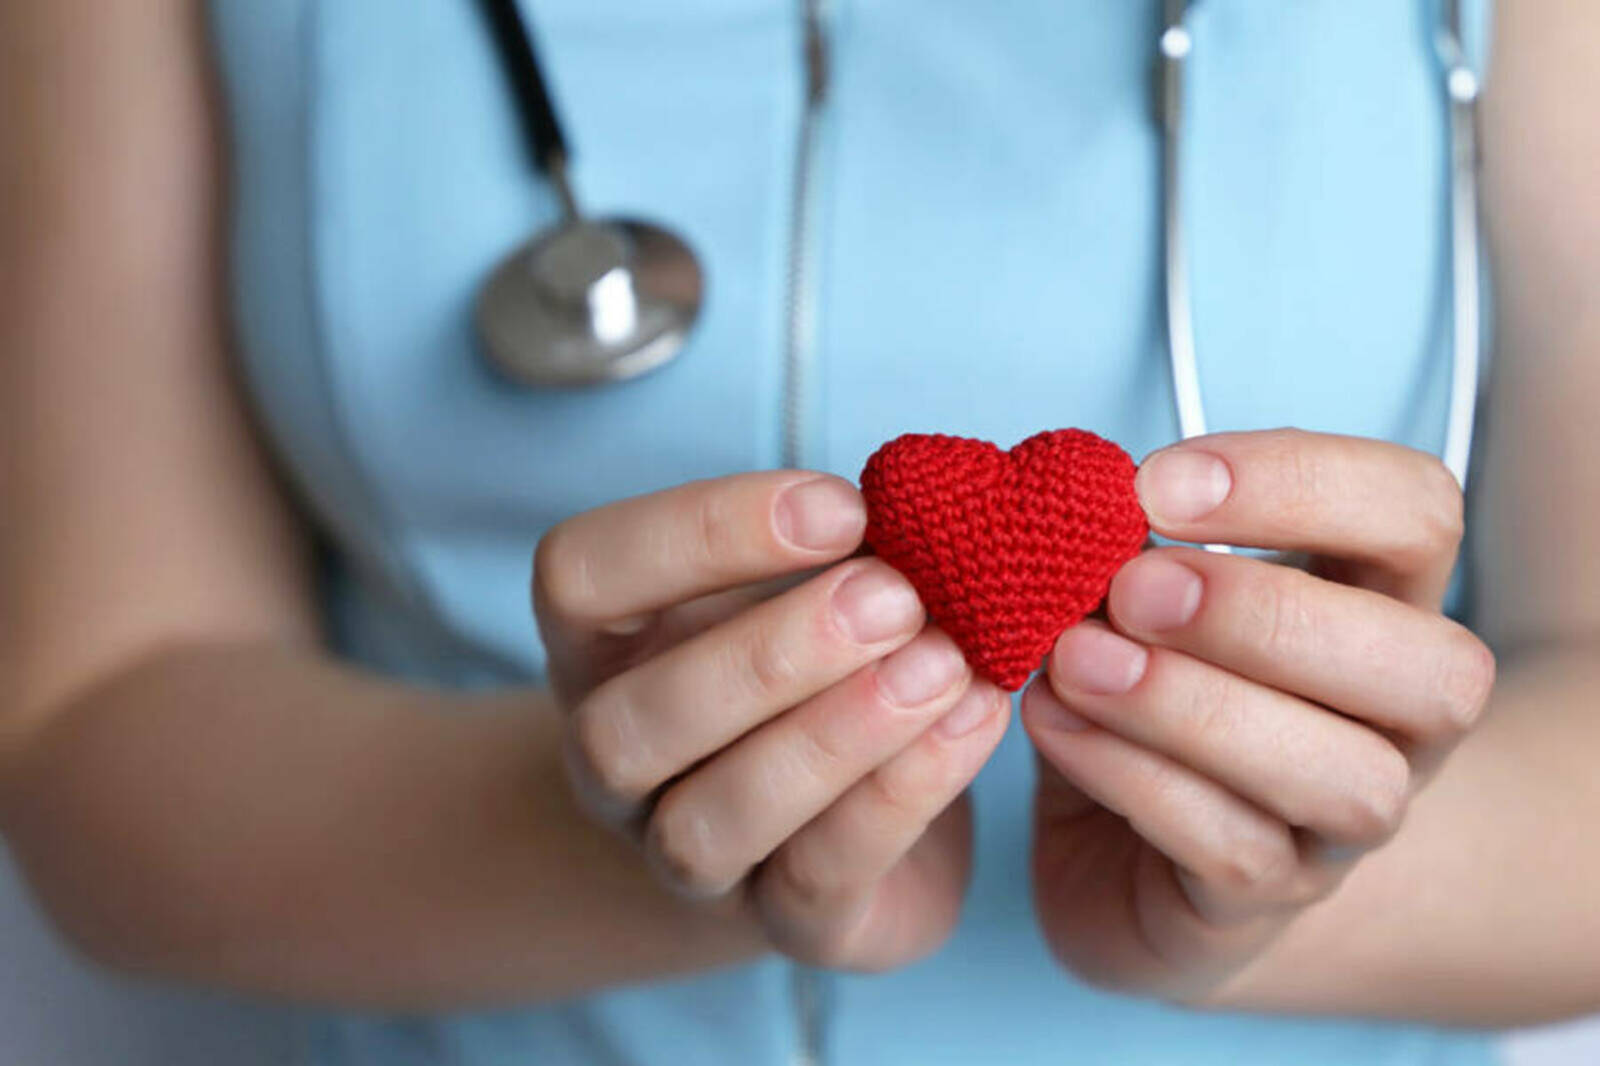 Woman doctor holding red knitted heart in hands